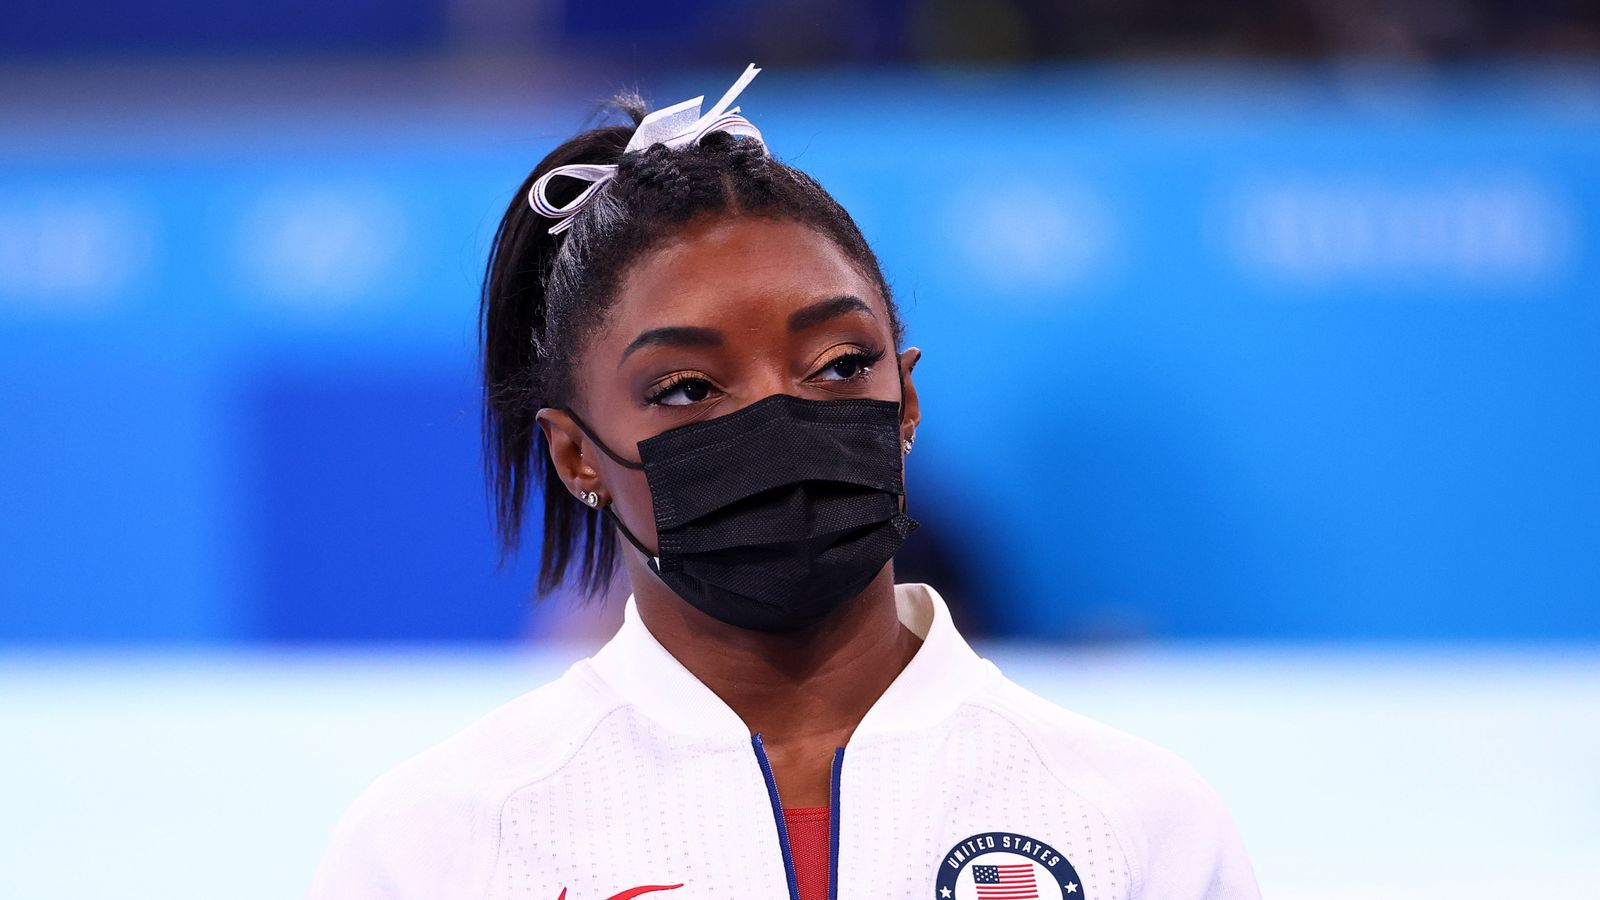 Tokyo Olympics: Simone Biles to compete in balance beam final after pulling out of events over mental health concerns